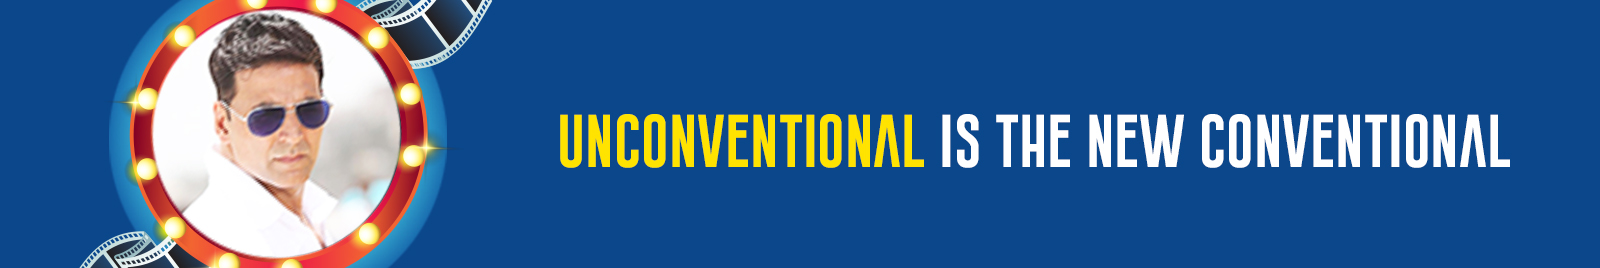 Unconventional is the new conventional